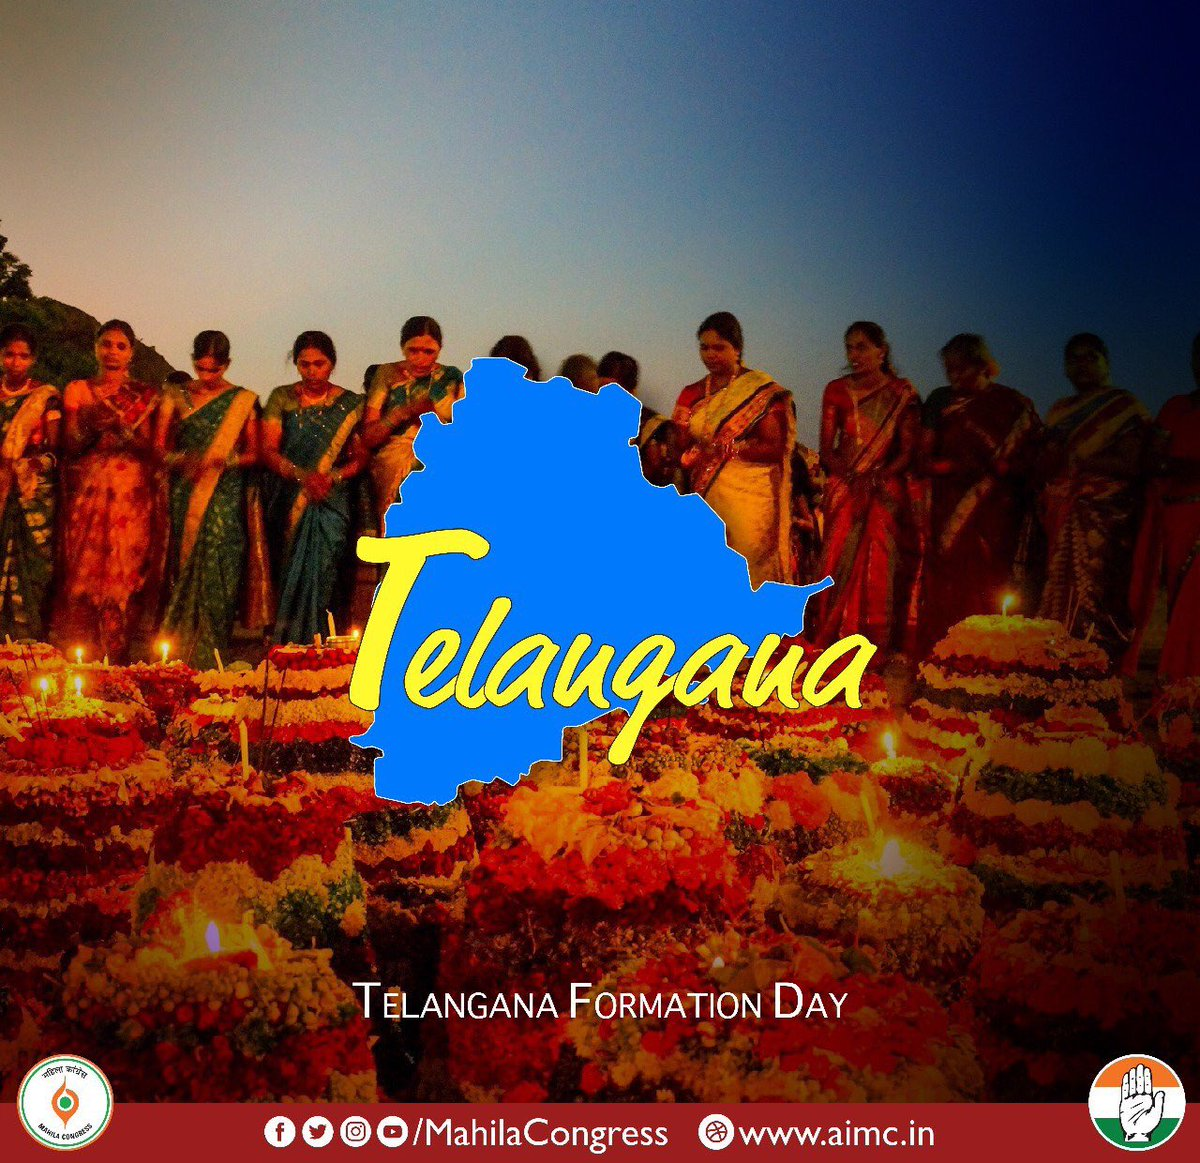 Greetings and best wishes to all the people of Telangana on Statehood Day!